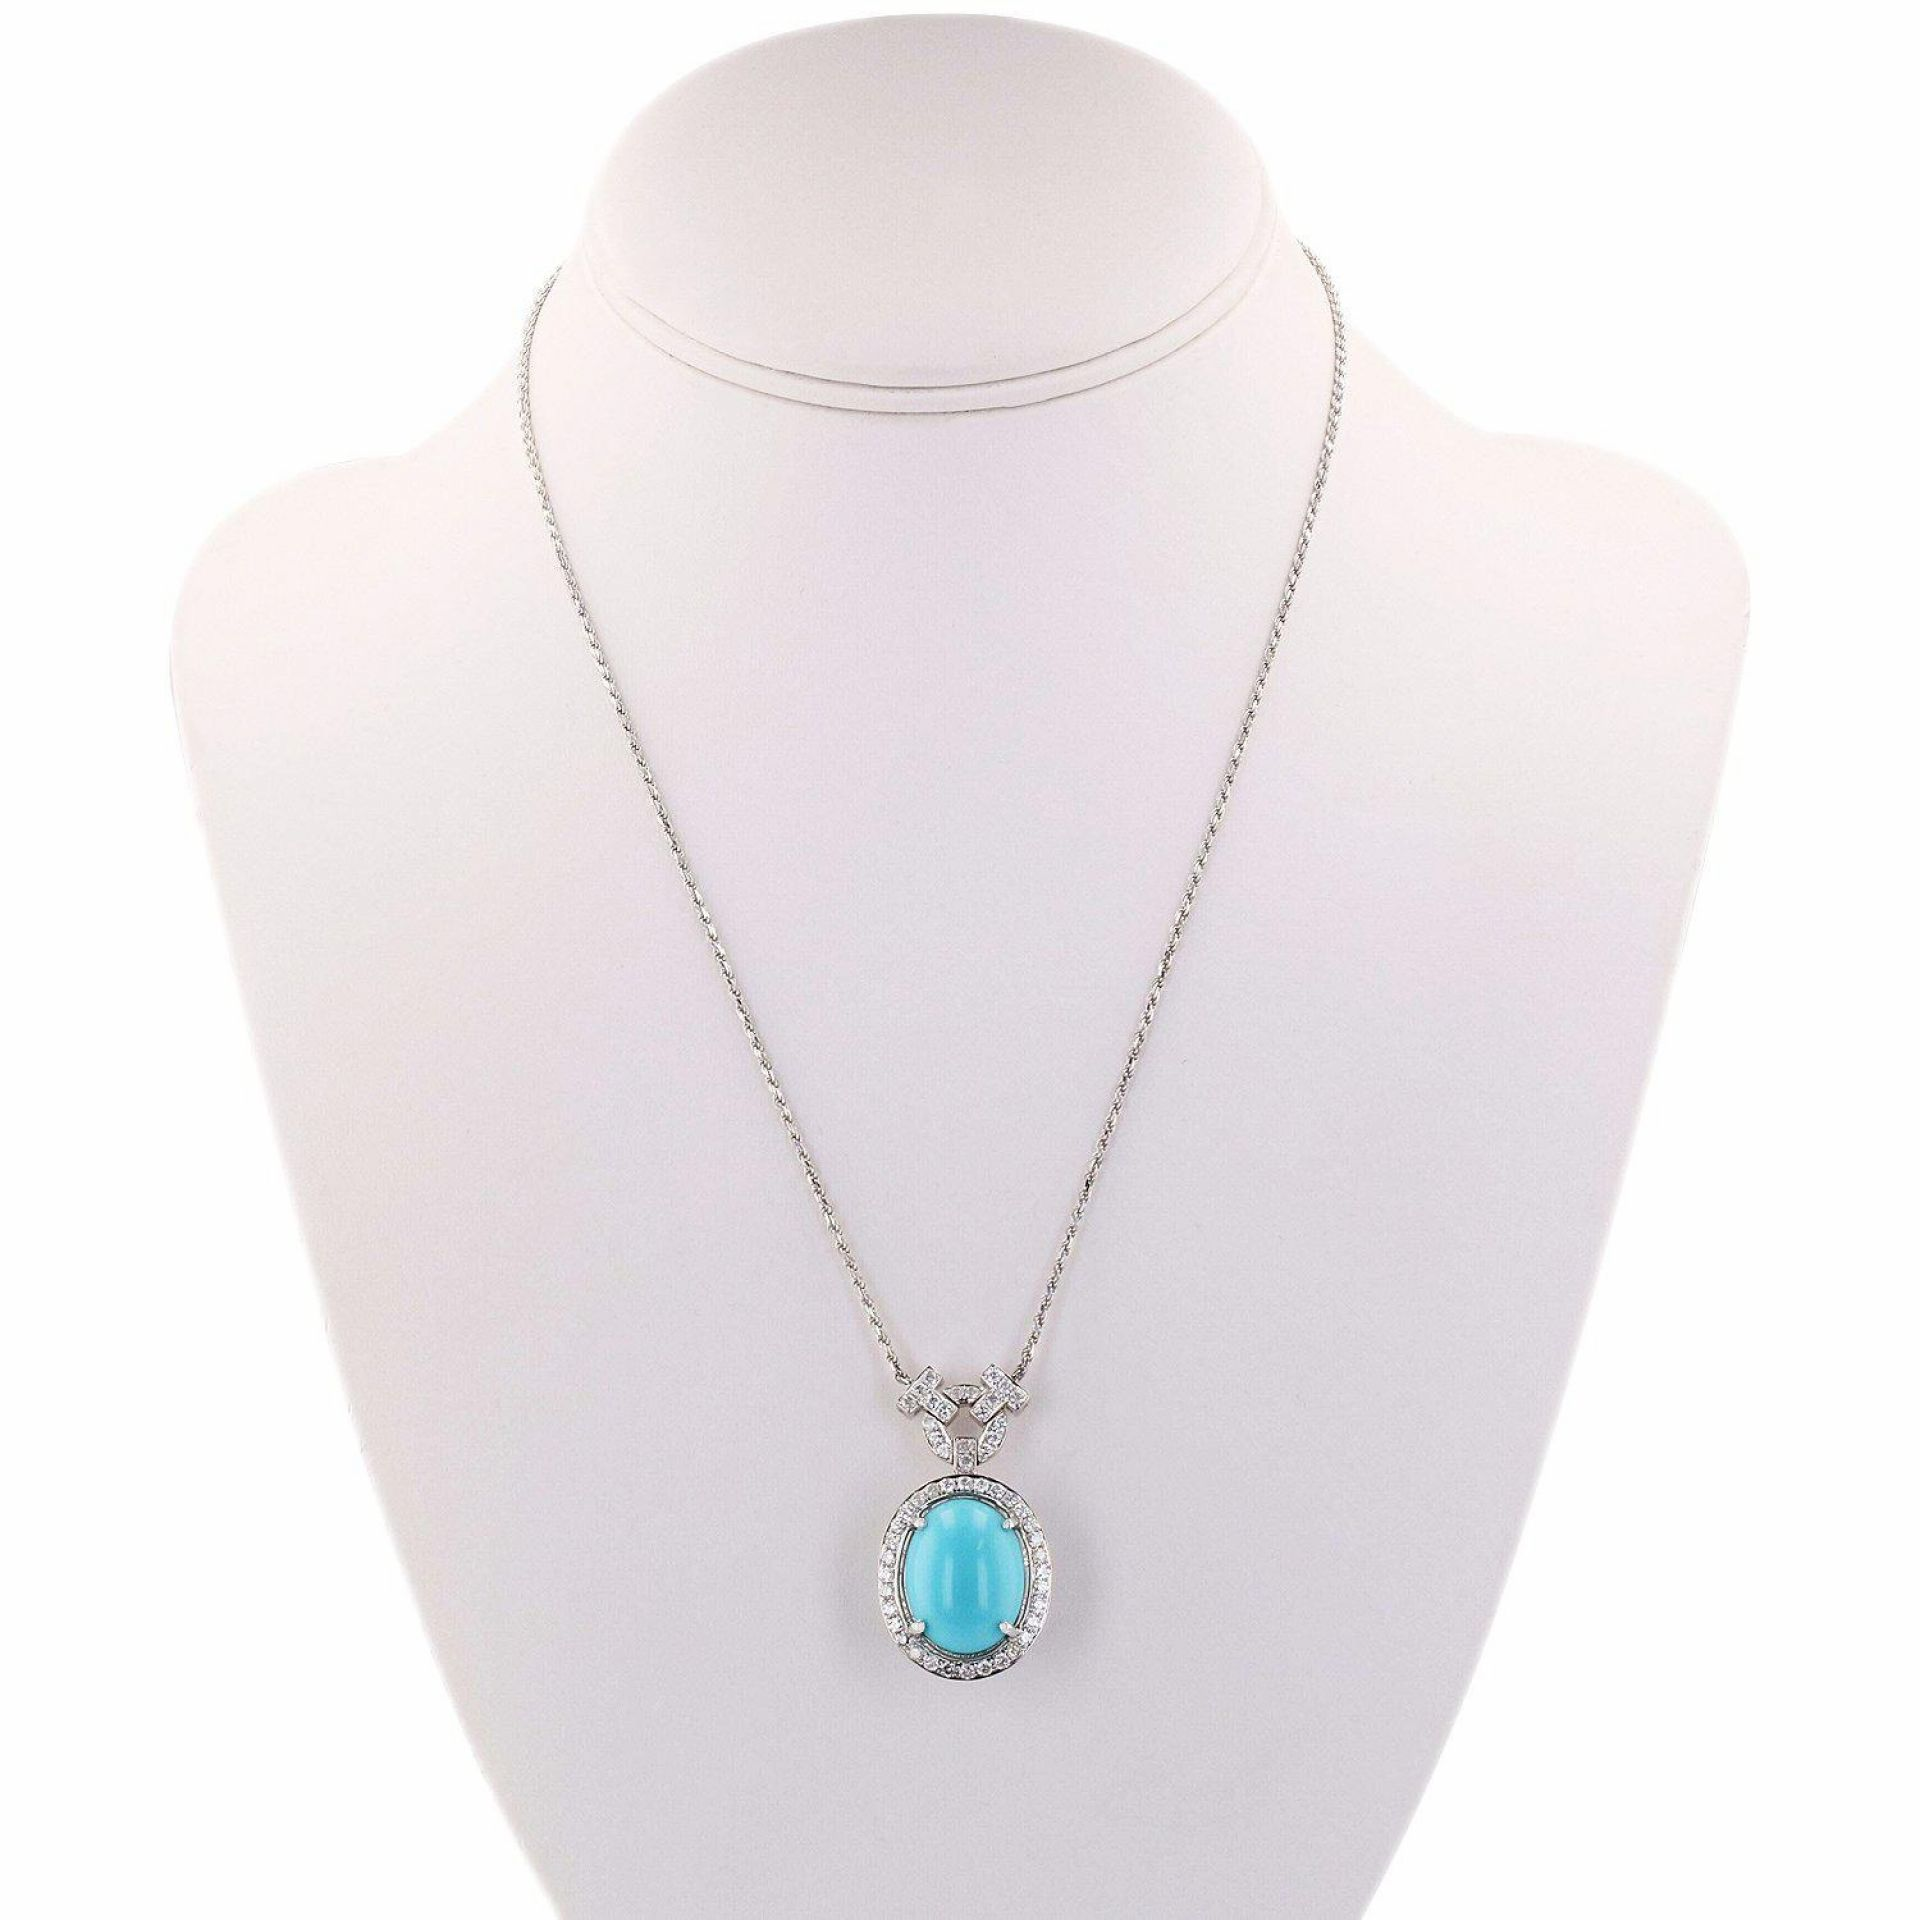 11.13ct Turquoise and 1.17ctw Diamond 14K White Gold Pendant/Necklace